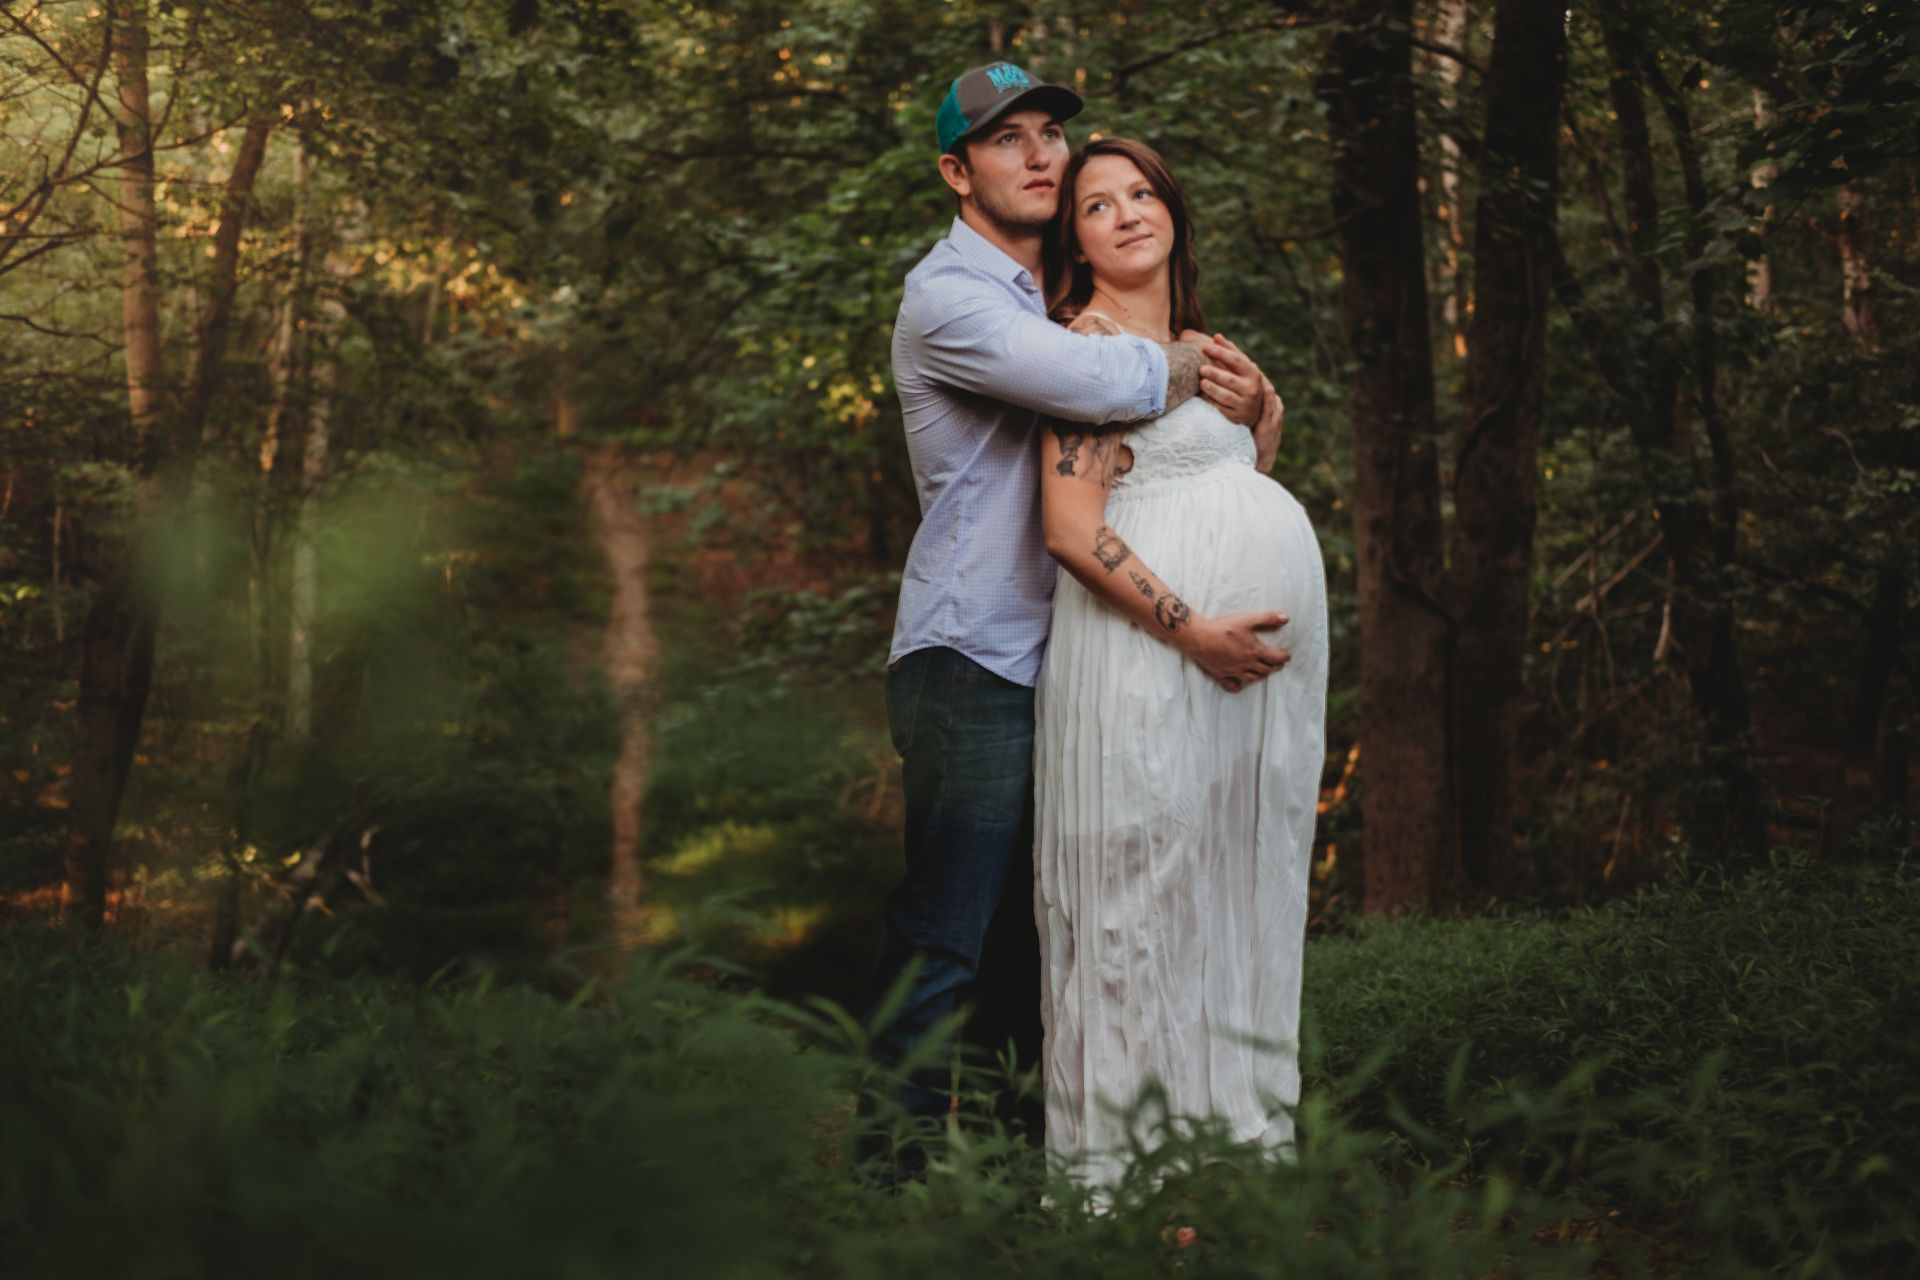 Best Maternity and Newborn Photographer Washington DC Maryland Virginia pregnant couple walking in green forest with white dress